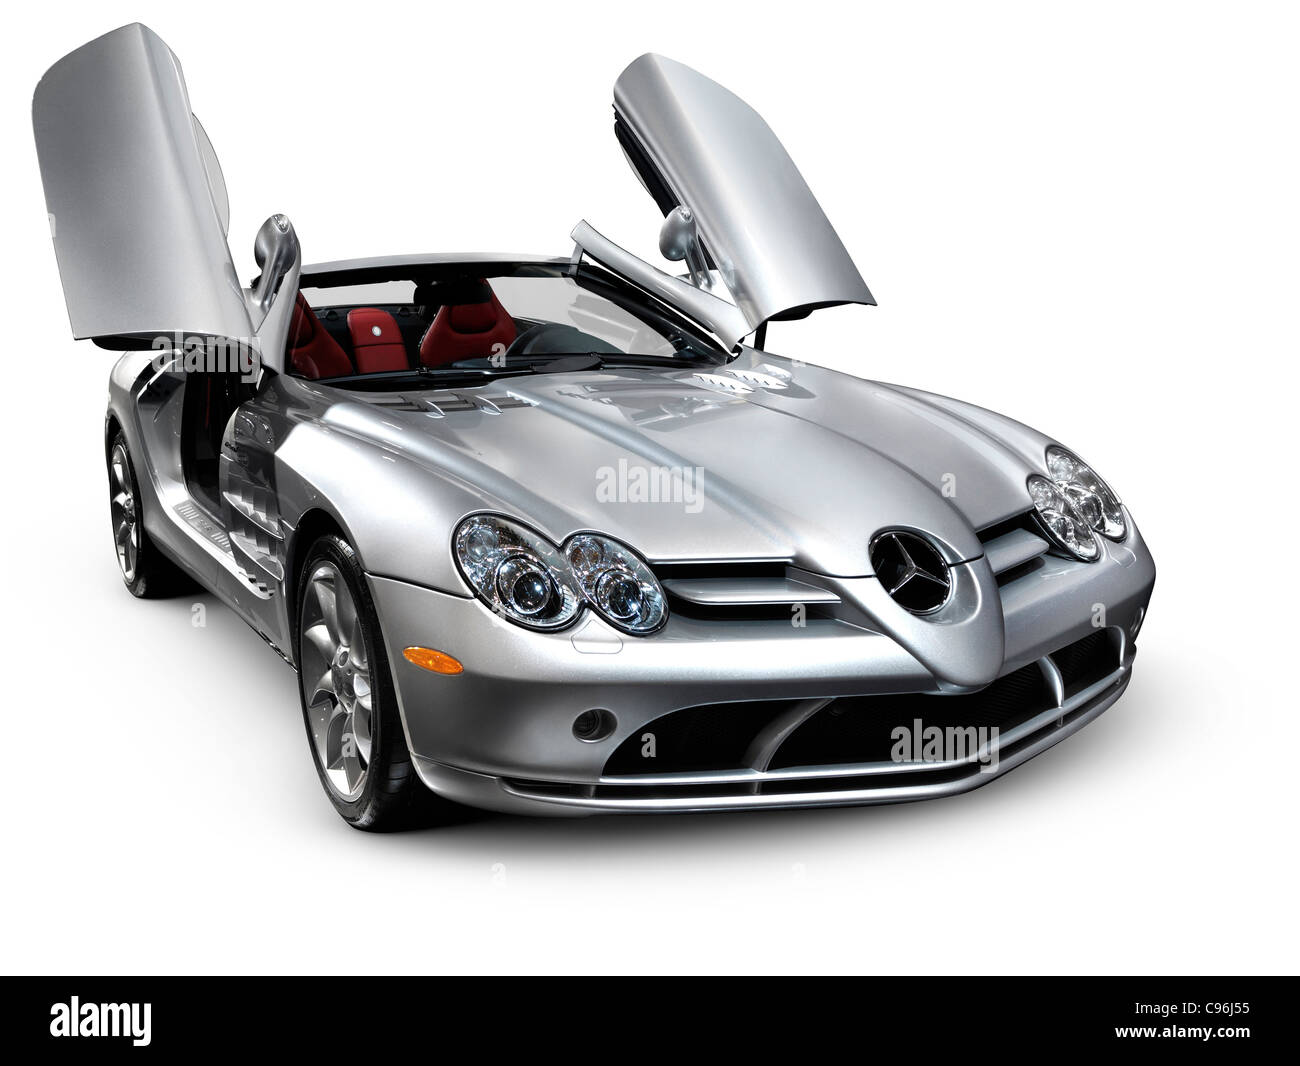 Mercedes benz sport car white images for Mercedes benz cars pictures